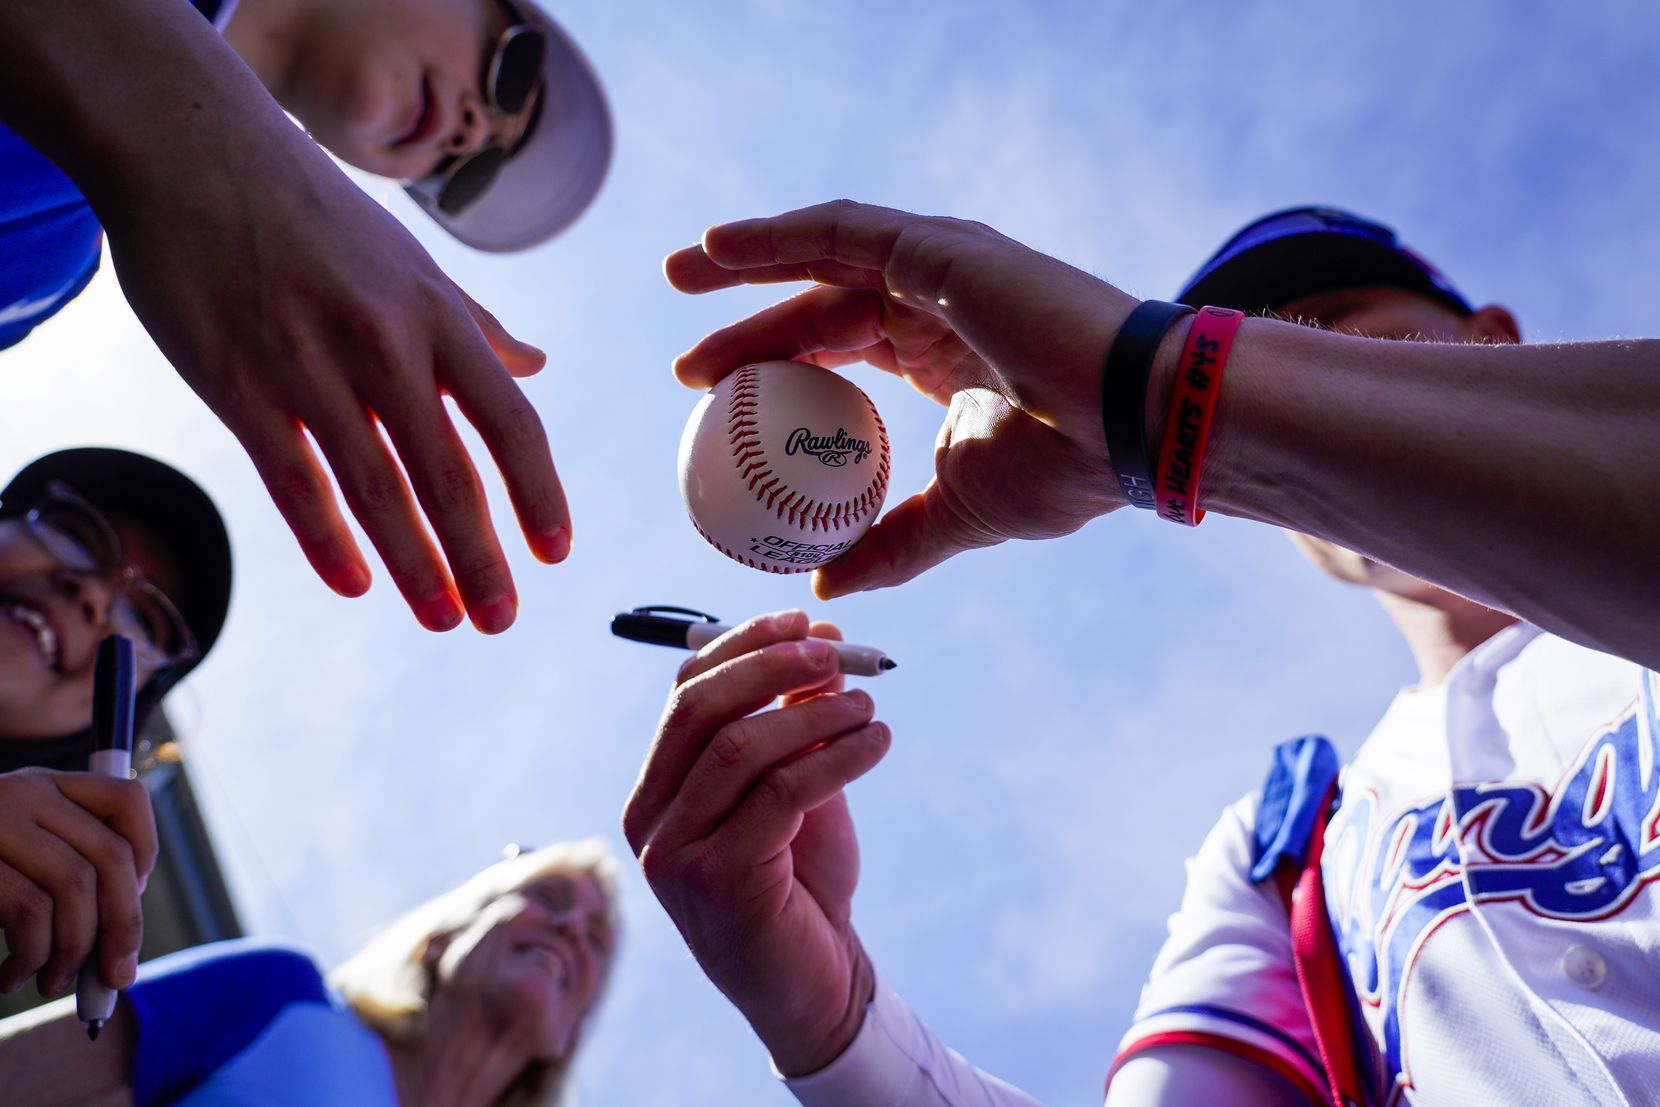 Rangers outfielder Scott Heineman signed autographs before an exhibition game against the Chicago Cubs at Surprise Stadium in late February in Surprise, Ariz.